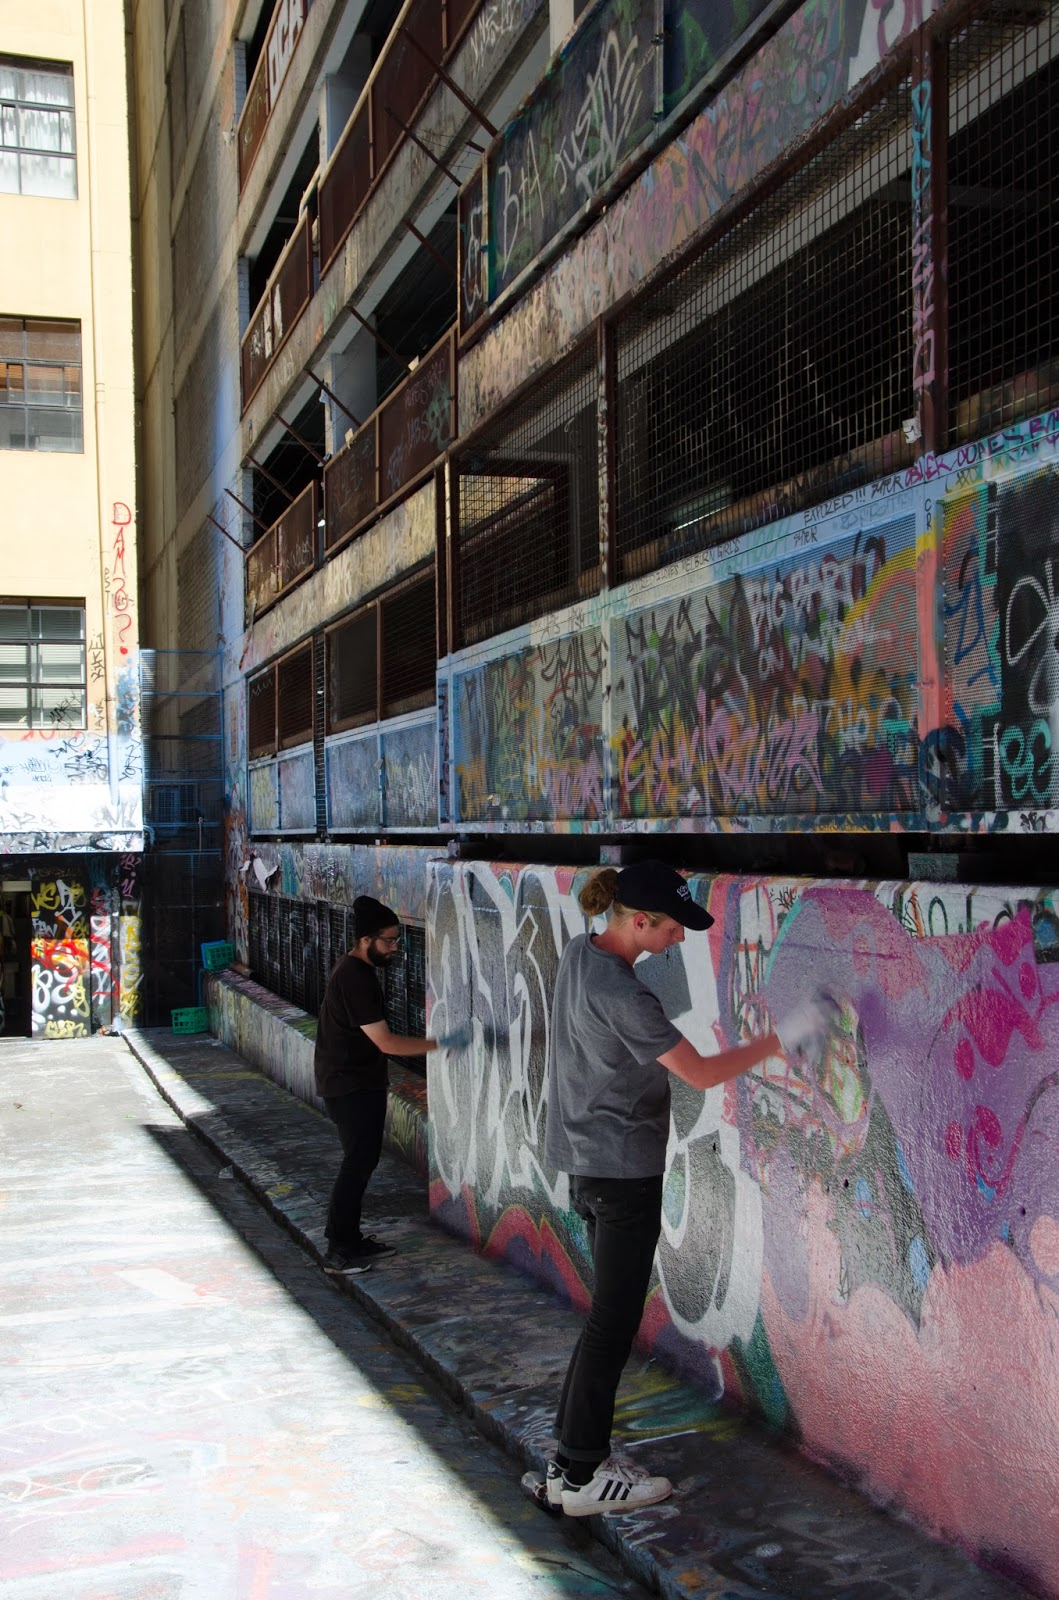 Two artists painting a wall in Caledonian Lane, Melbourne.